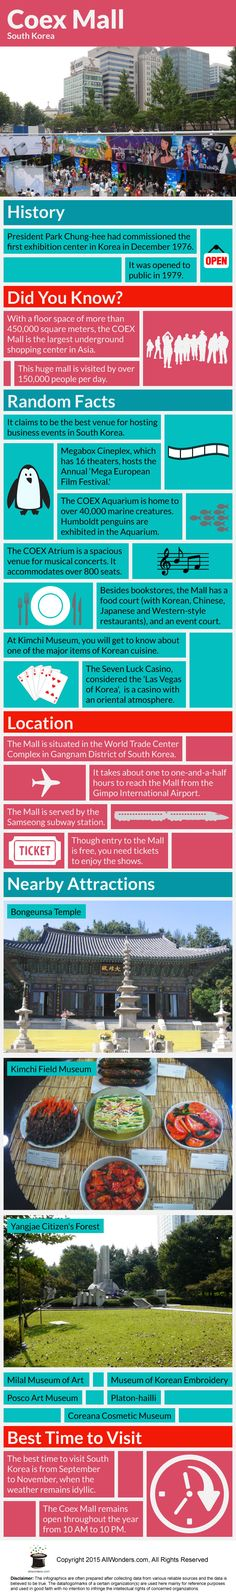 Coex Mall Infographic